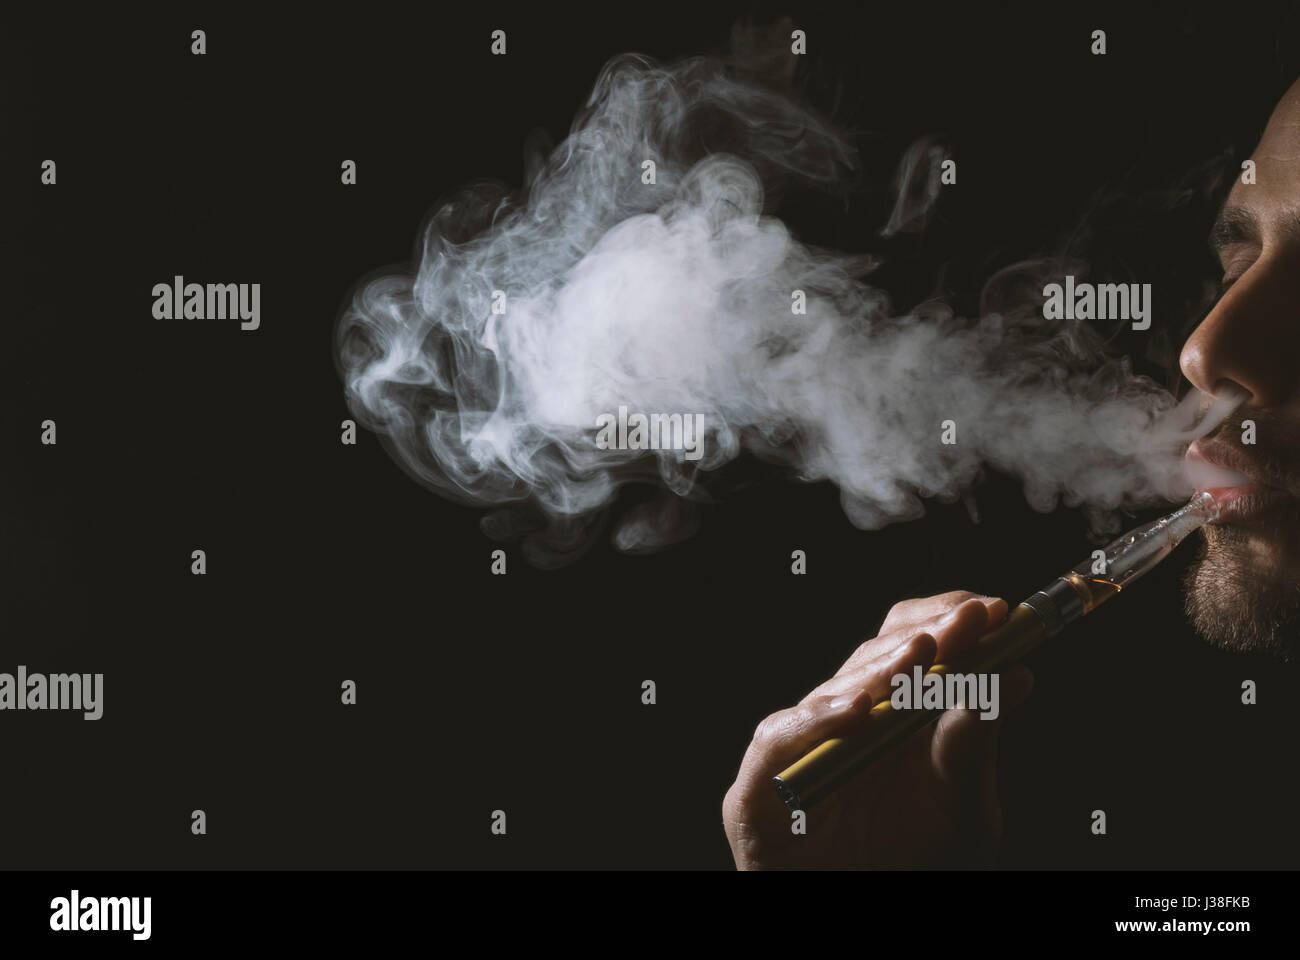 Young man holding and vaping an electronic cigarette, e-cig, ecigarette. - Stock Image